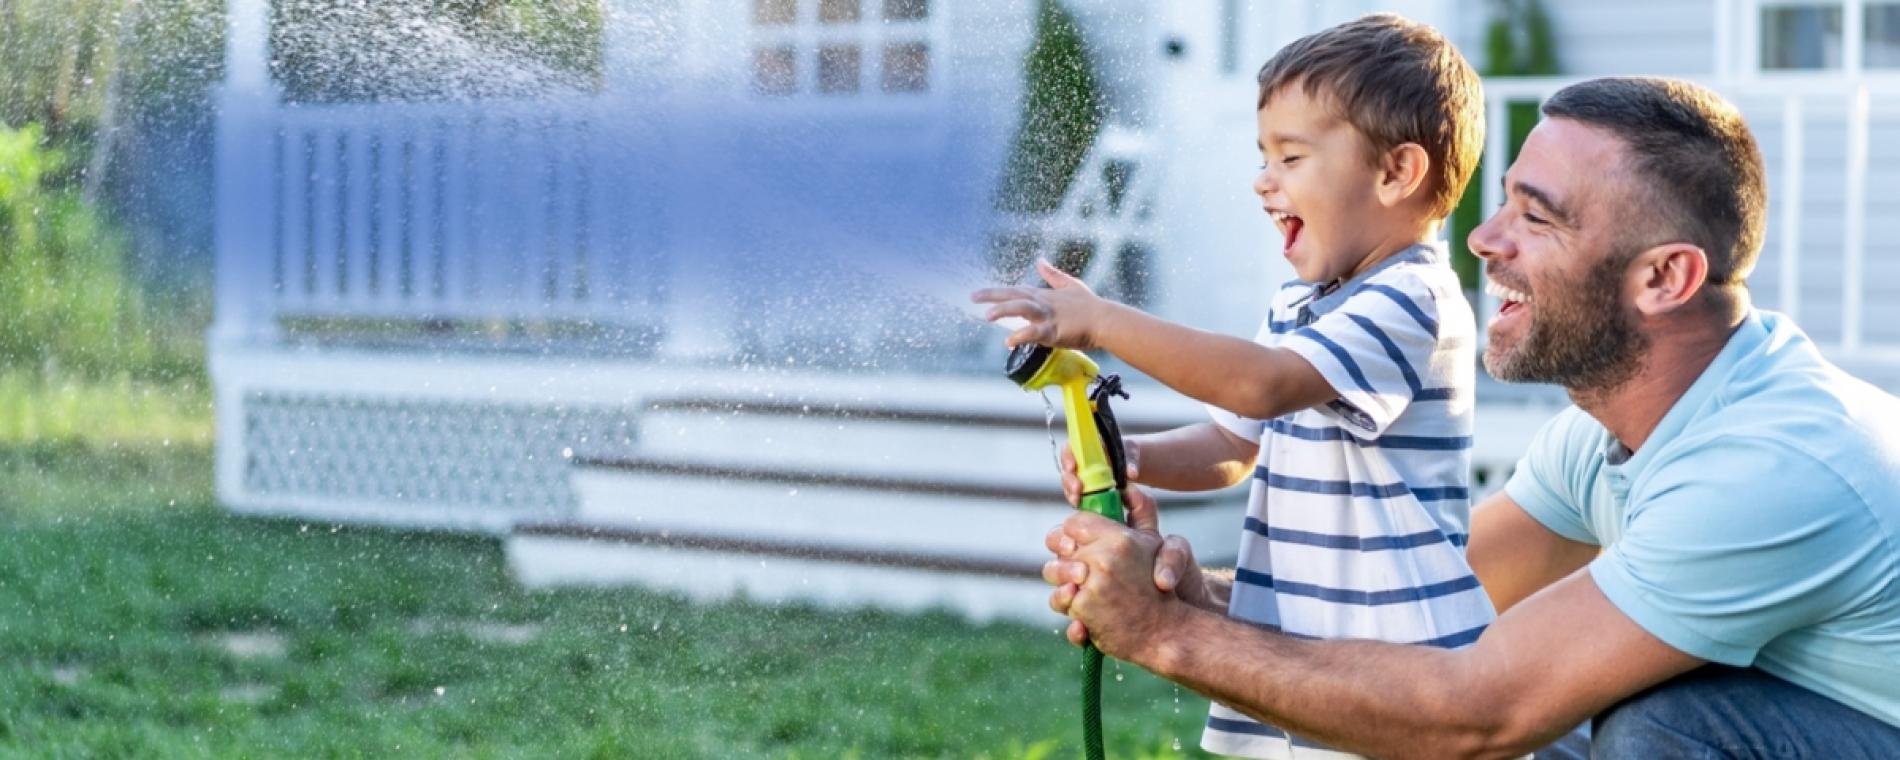 Photo of father and young son playing with a hose.